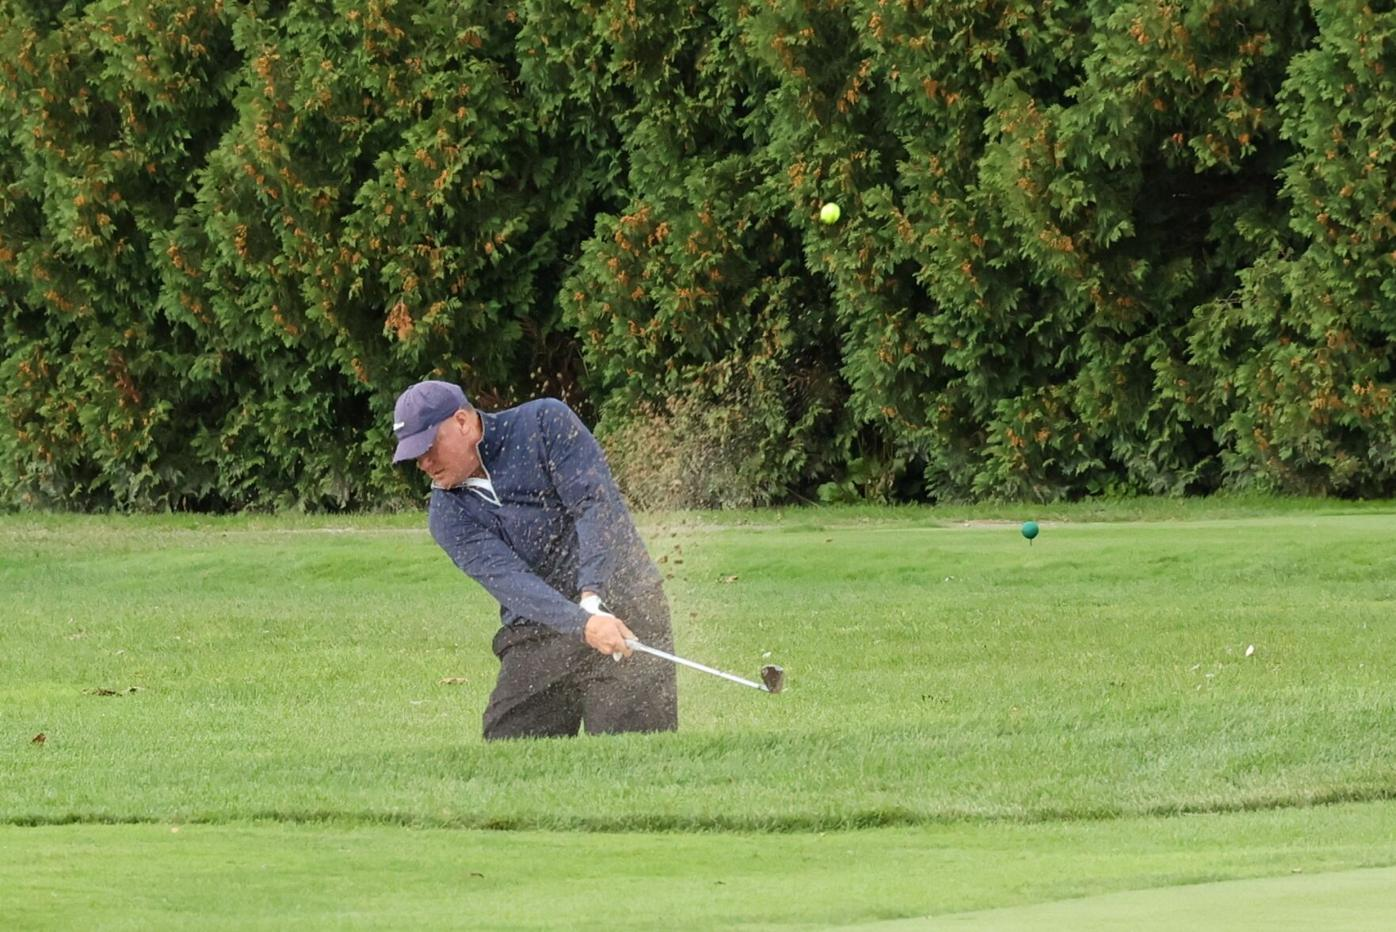 brian foley hits out of a bunker